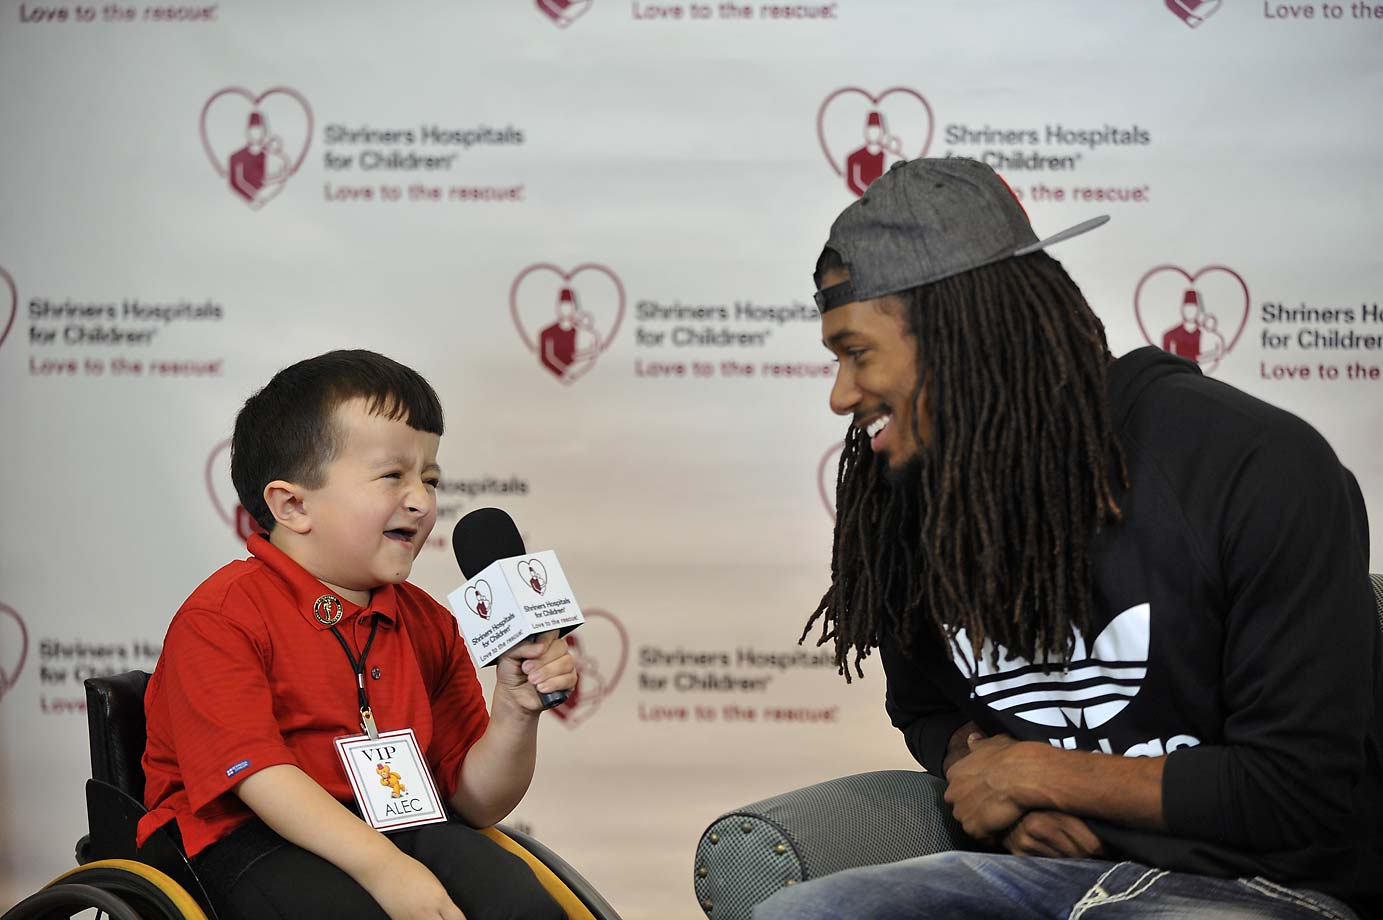 NFL prospect Trae Waynes of Michigan State talks to pediatric patient Alec Cabacungan while doing a mock interview during the NFL PLAY 60 activities at Shriners Hospital for Children on Thursday, April 30 in Chicago.